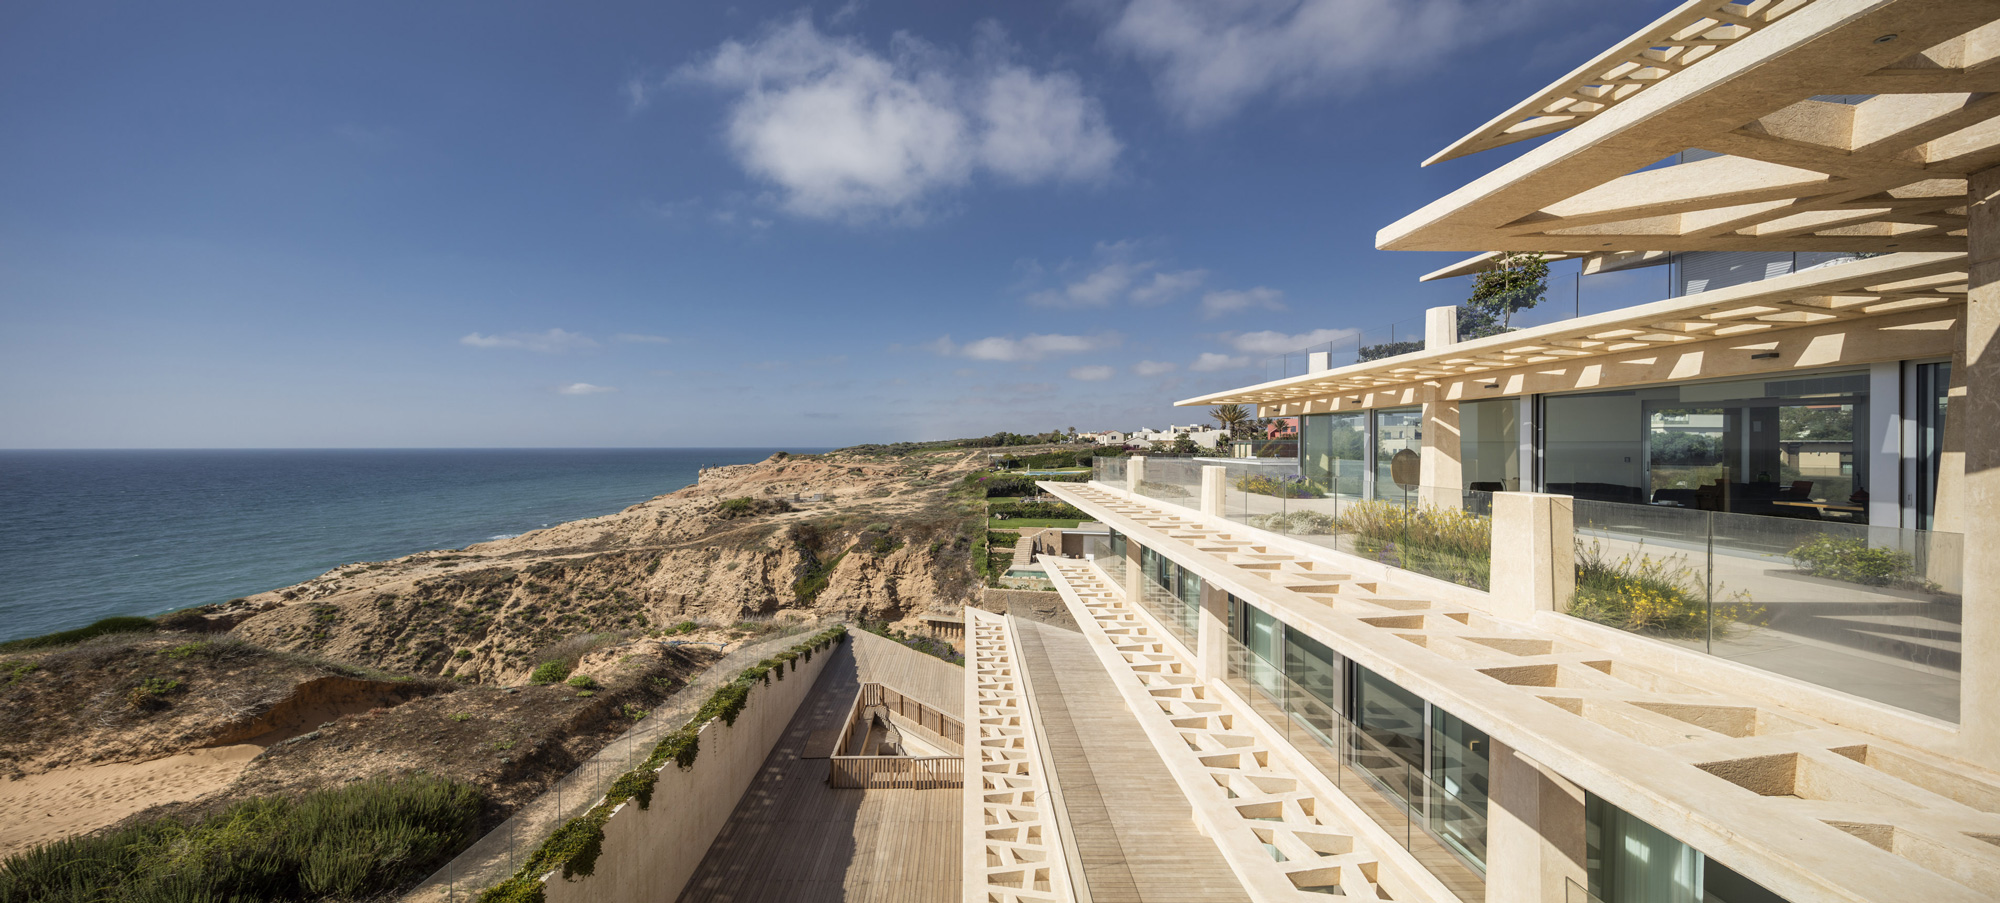 The desire to maximize sea view was a primary concern in designing this complex and challenging apartment building.